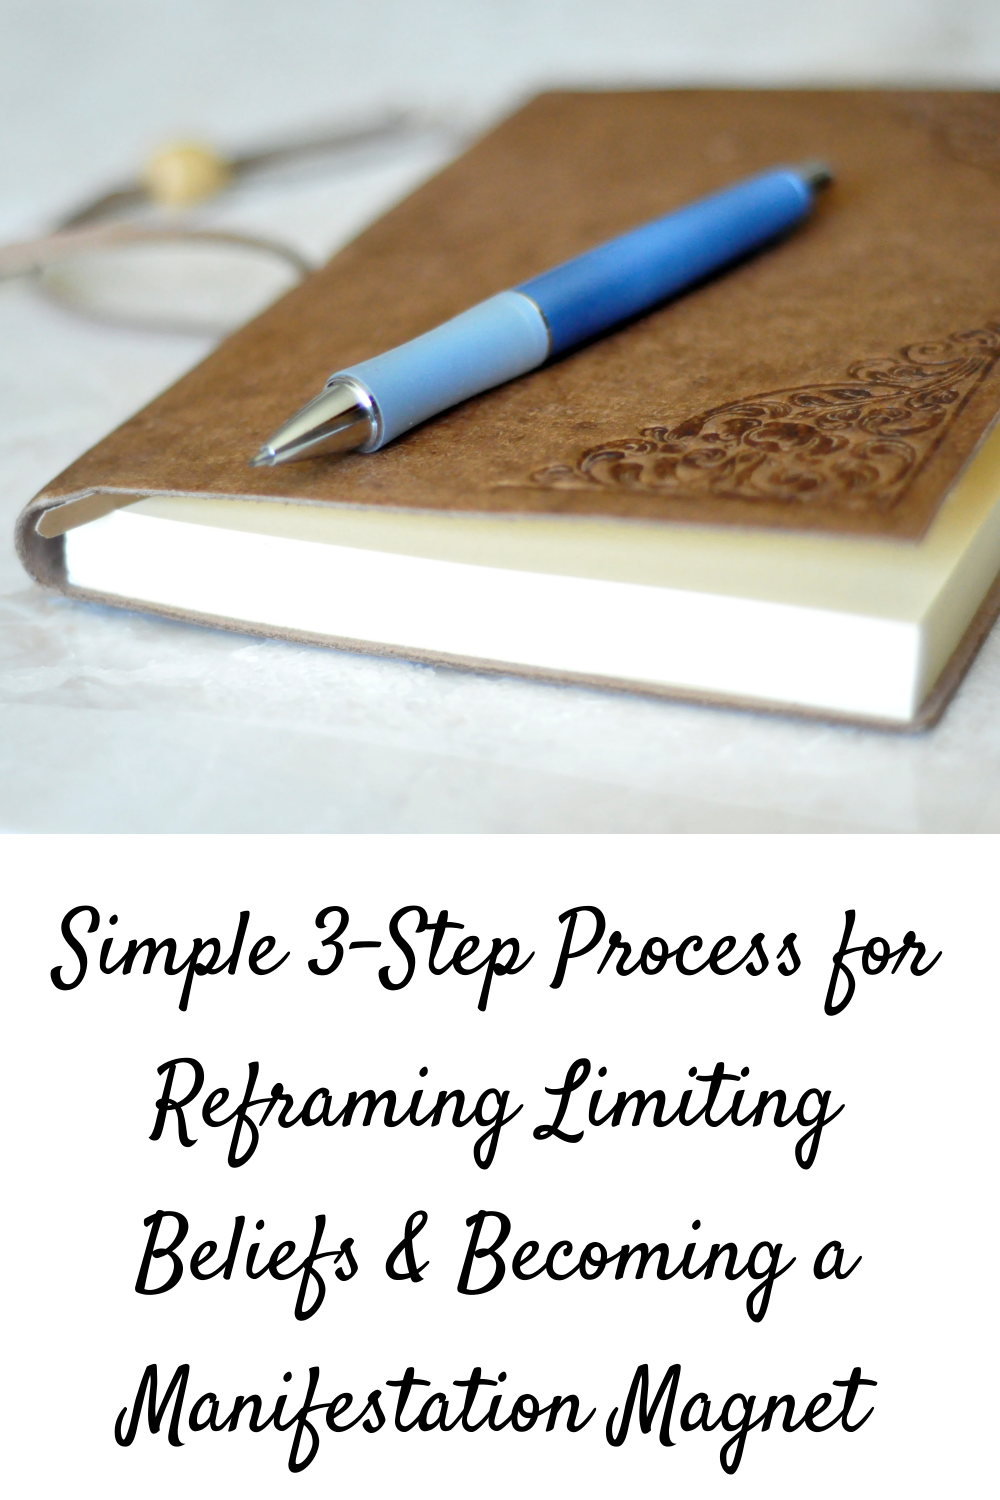 Simple 3-Step Process for Reframing Limiting Beliefs & Becoming a Manifestation Magnet